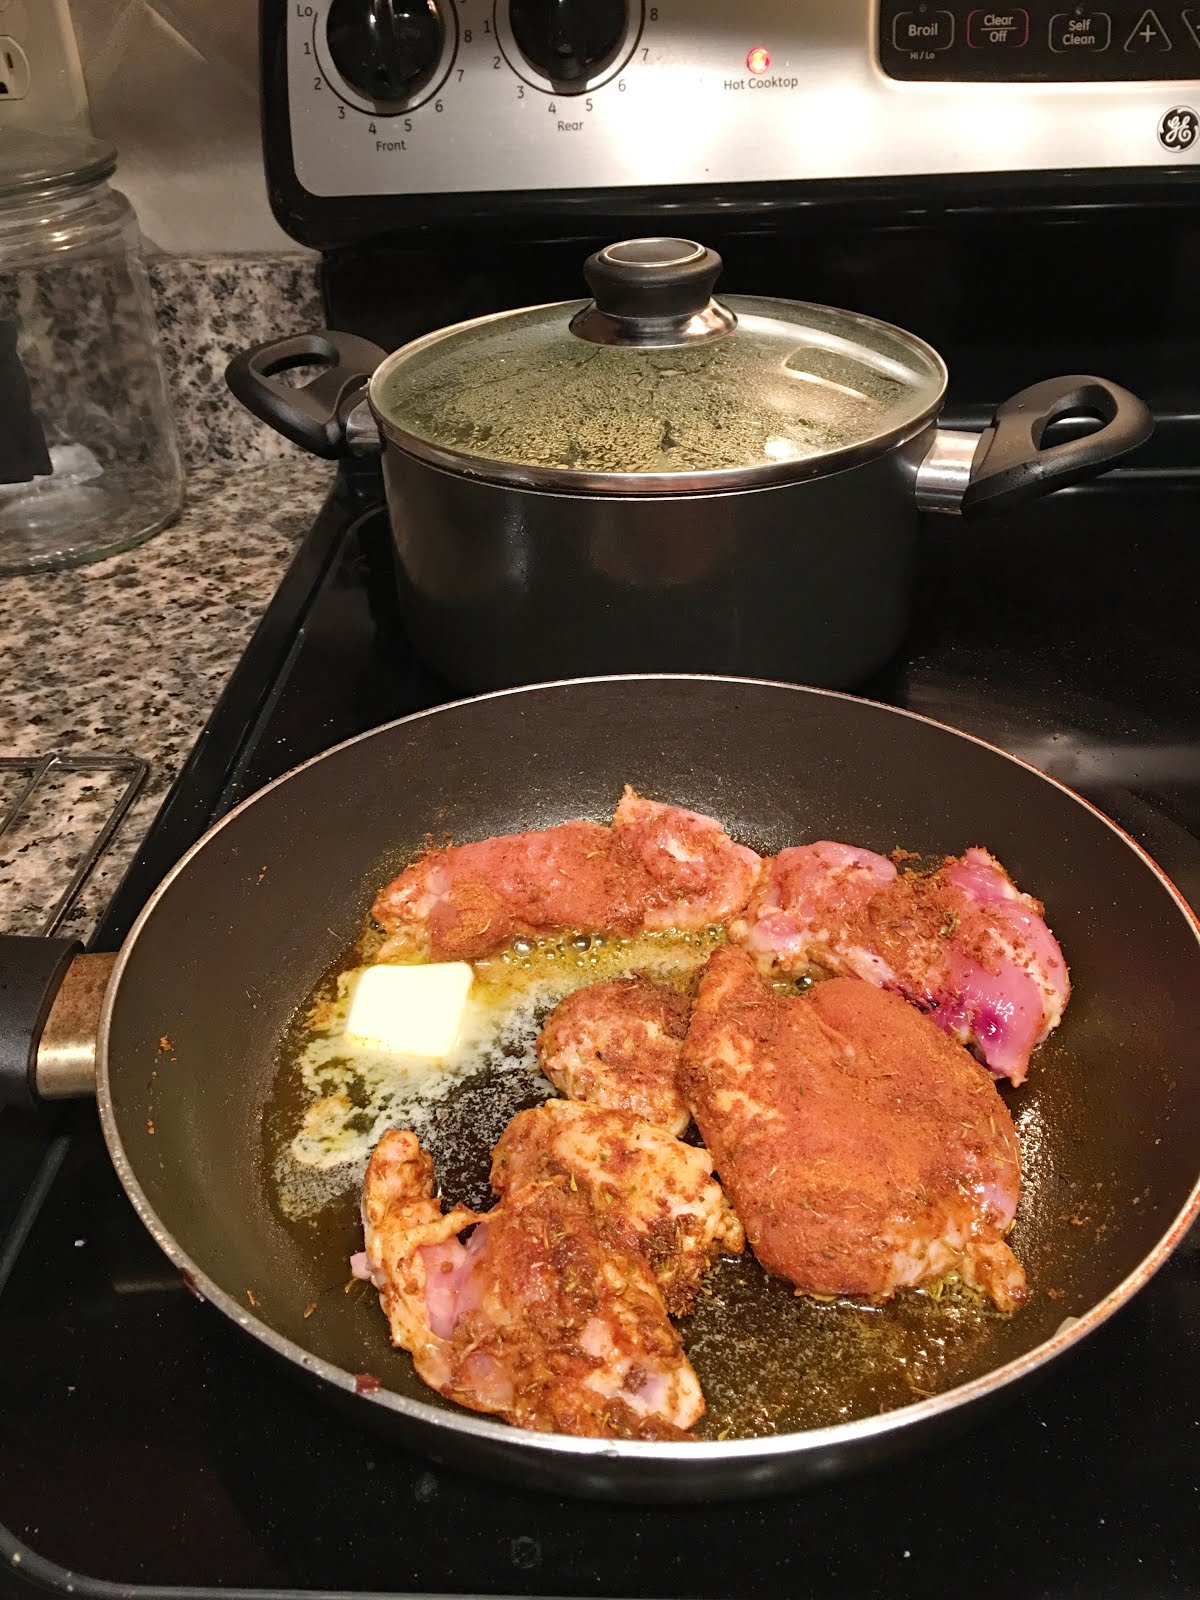 Blue apron yellow grits - Finally I Cooked The Chicken Using Their Trinidadian Curry Spice Blend Which Was Amazing And A Tablespoon Of Butter